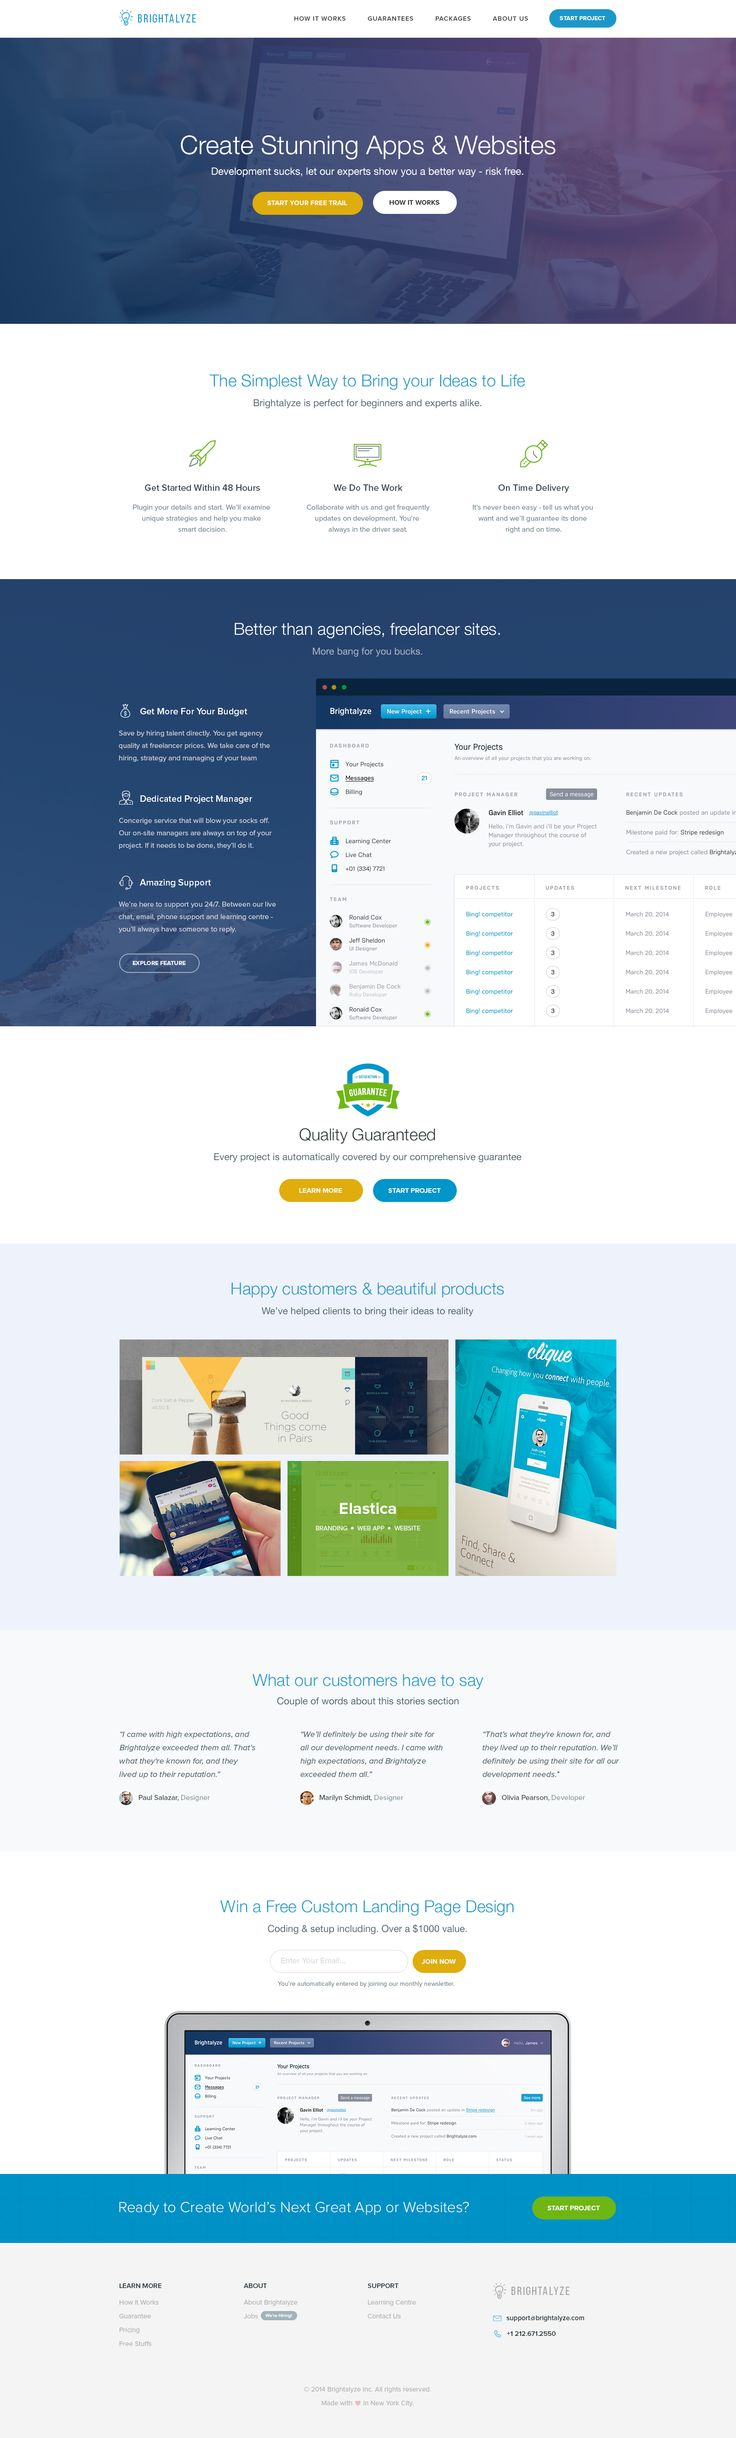 Cool colors web design - Brightalyze Landing Page By Prakash Ghodke Cool Colors Easy To Look At